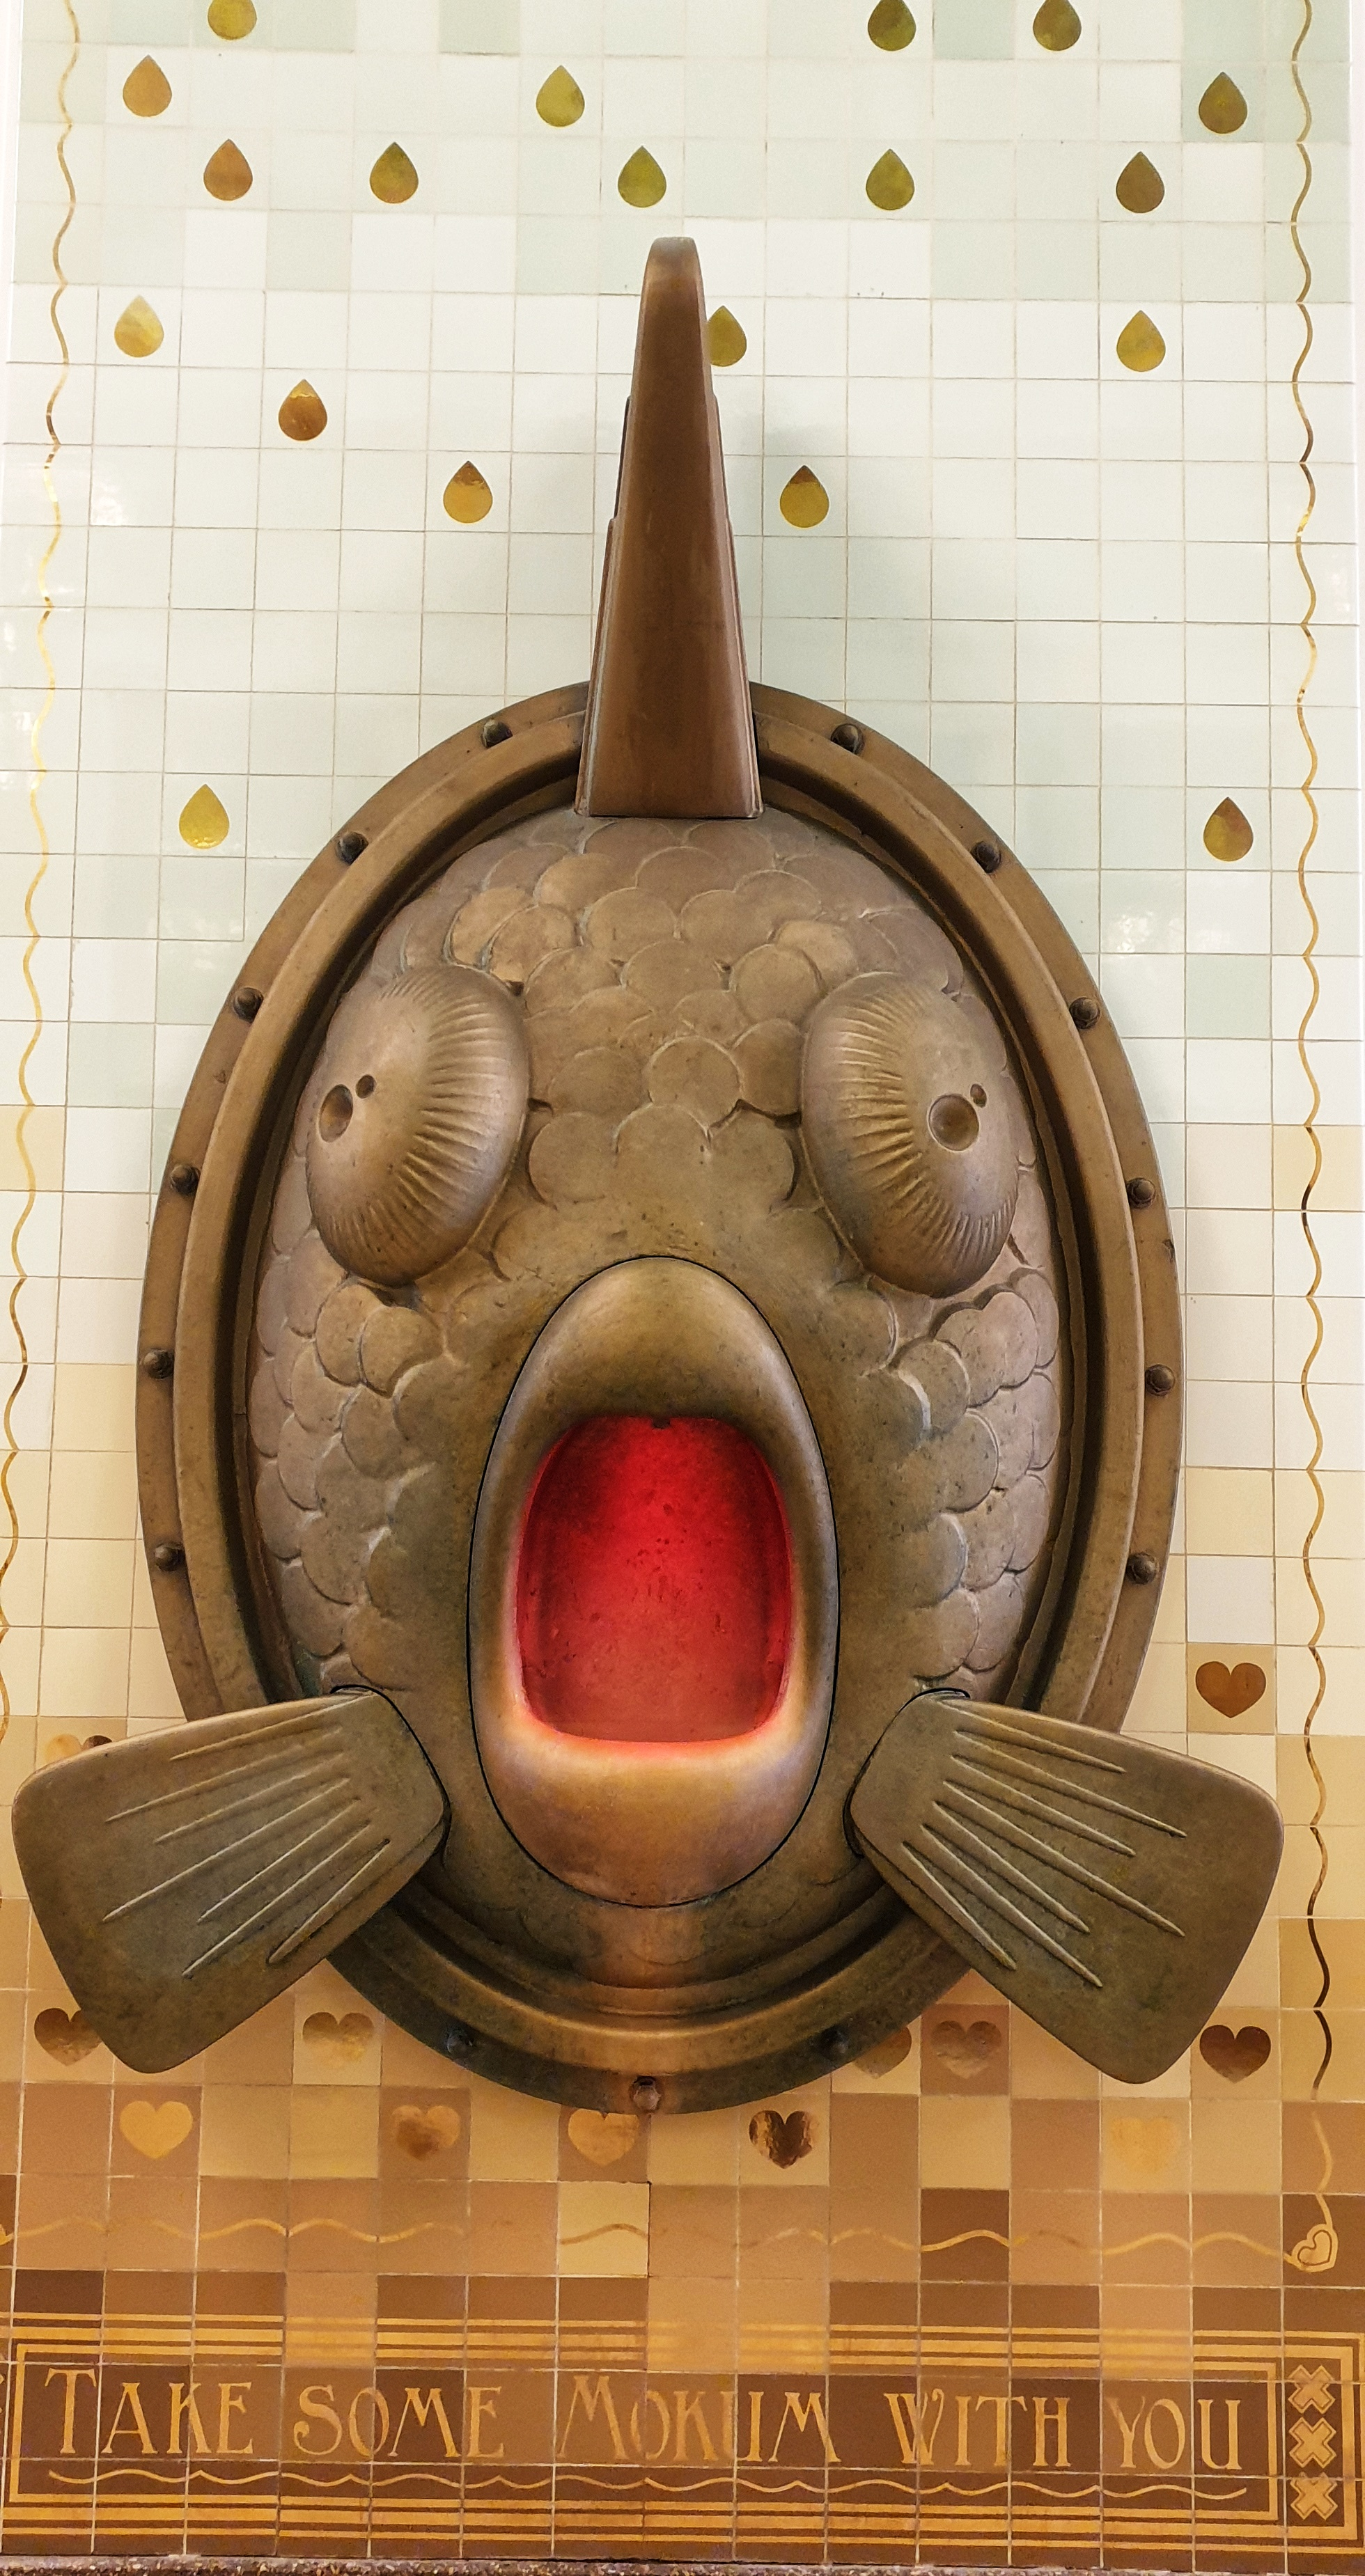 A statue of a fish on a wall in Amsterdam. The fish has i's mouth open in shock.